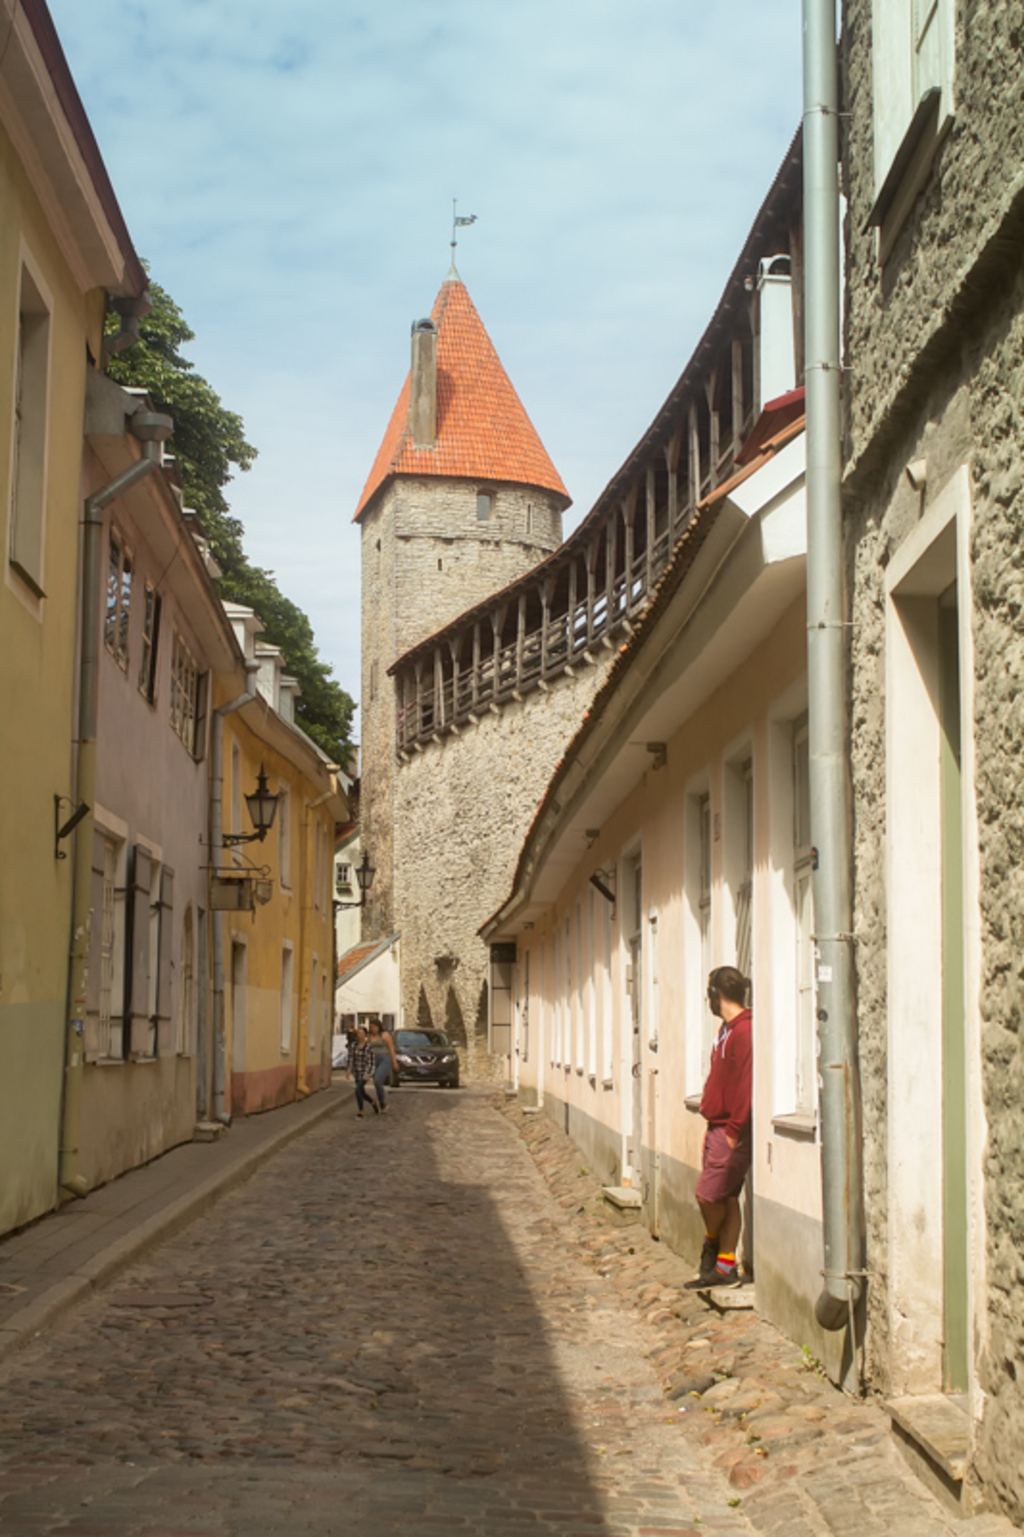 A young man is standing in the doorway at the old town of Ta... via Jukka Heinovirta